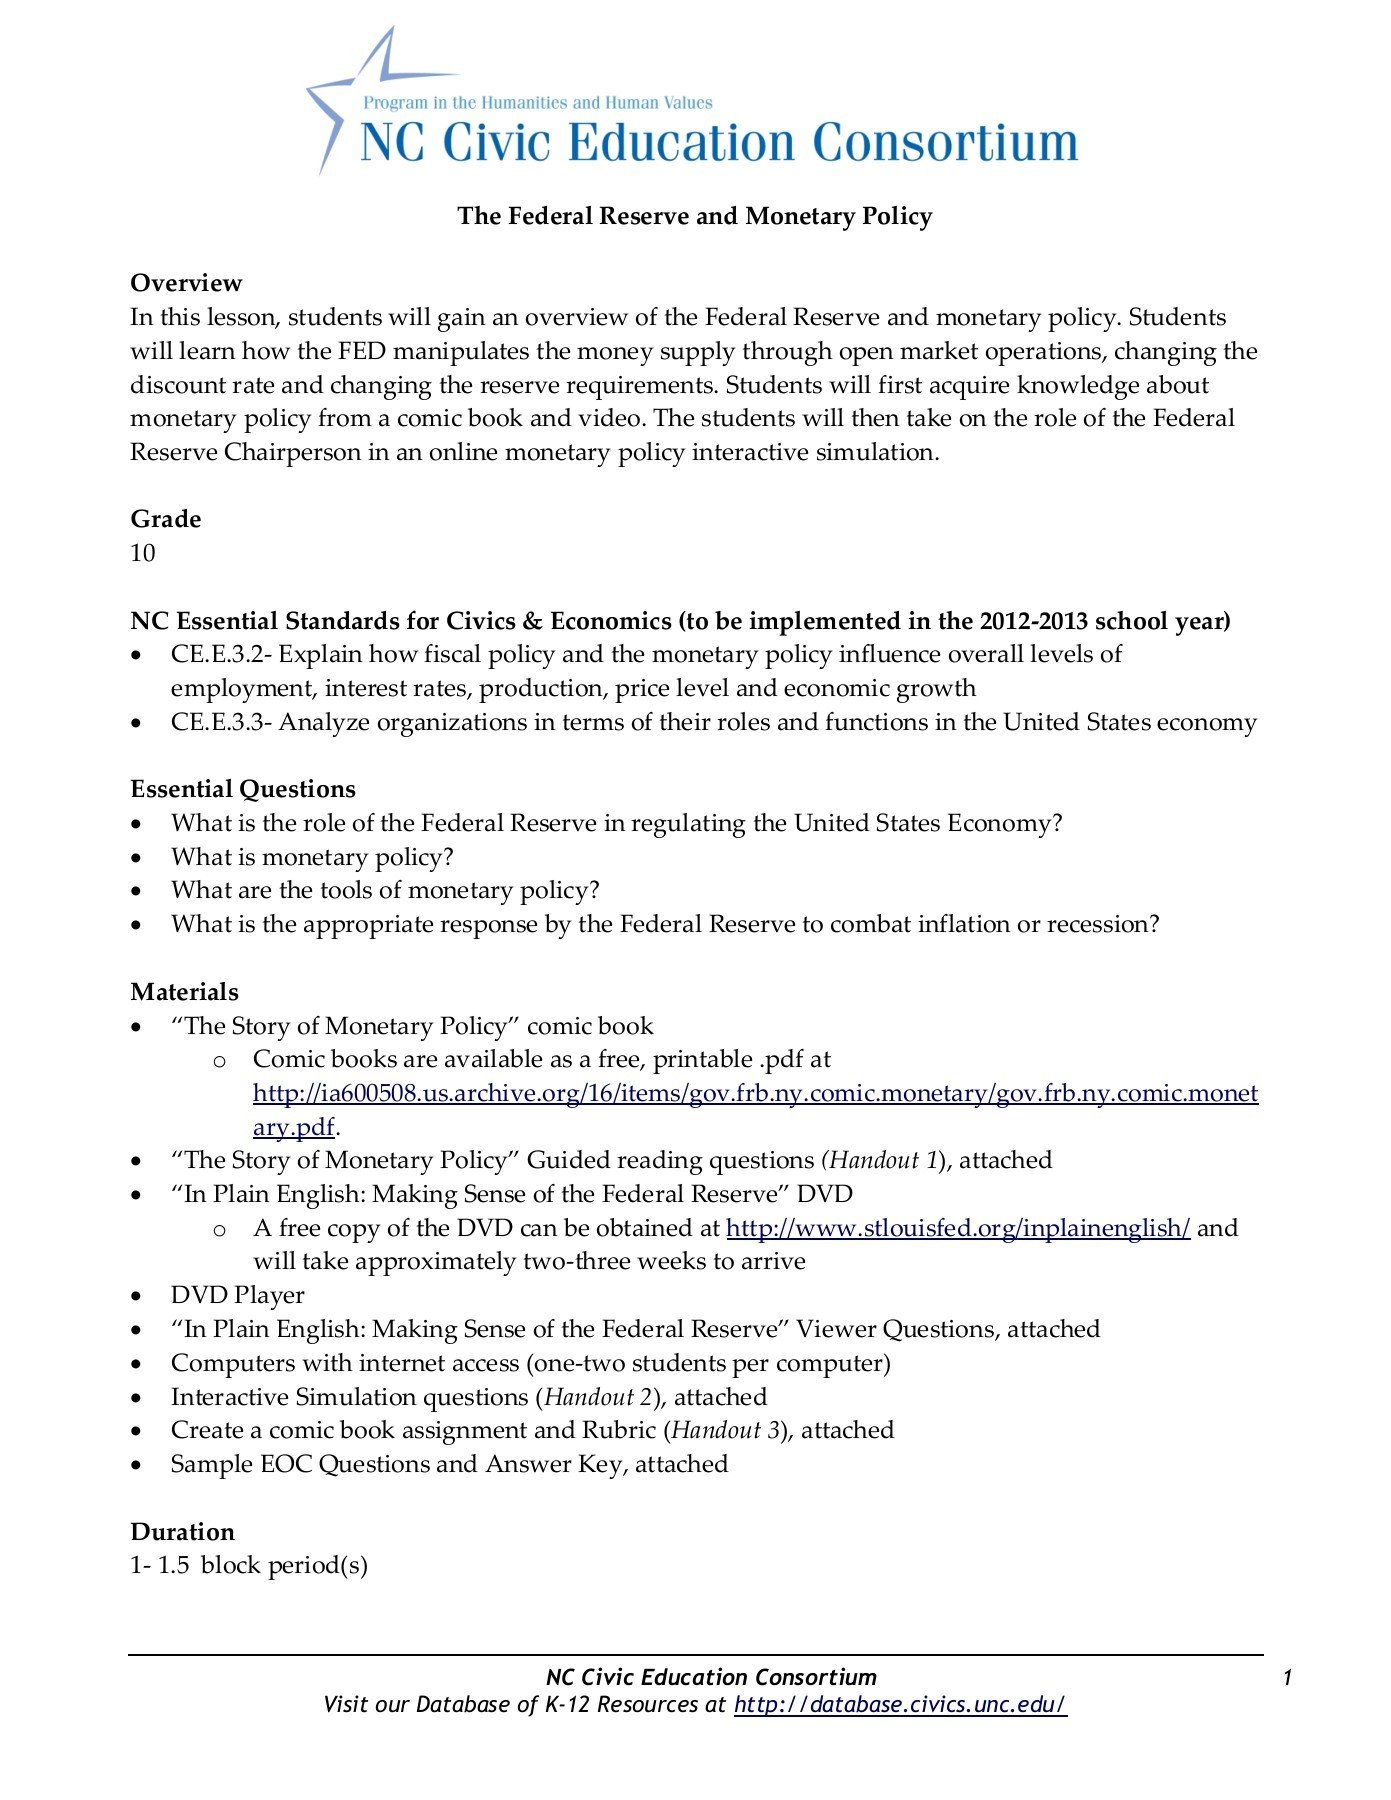 The Federal Reserve And Monetary Policy Grade Pages 1  11  Text Intended For Tools Of The Federal Reserve Worksheet Answer Key